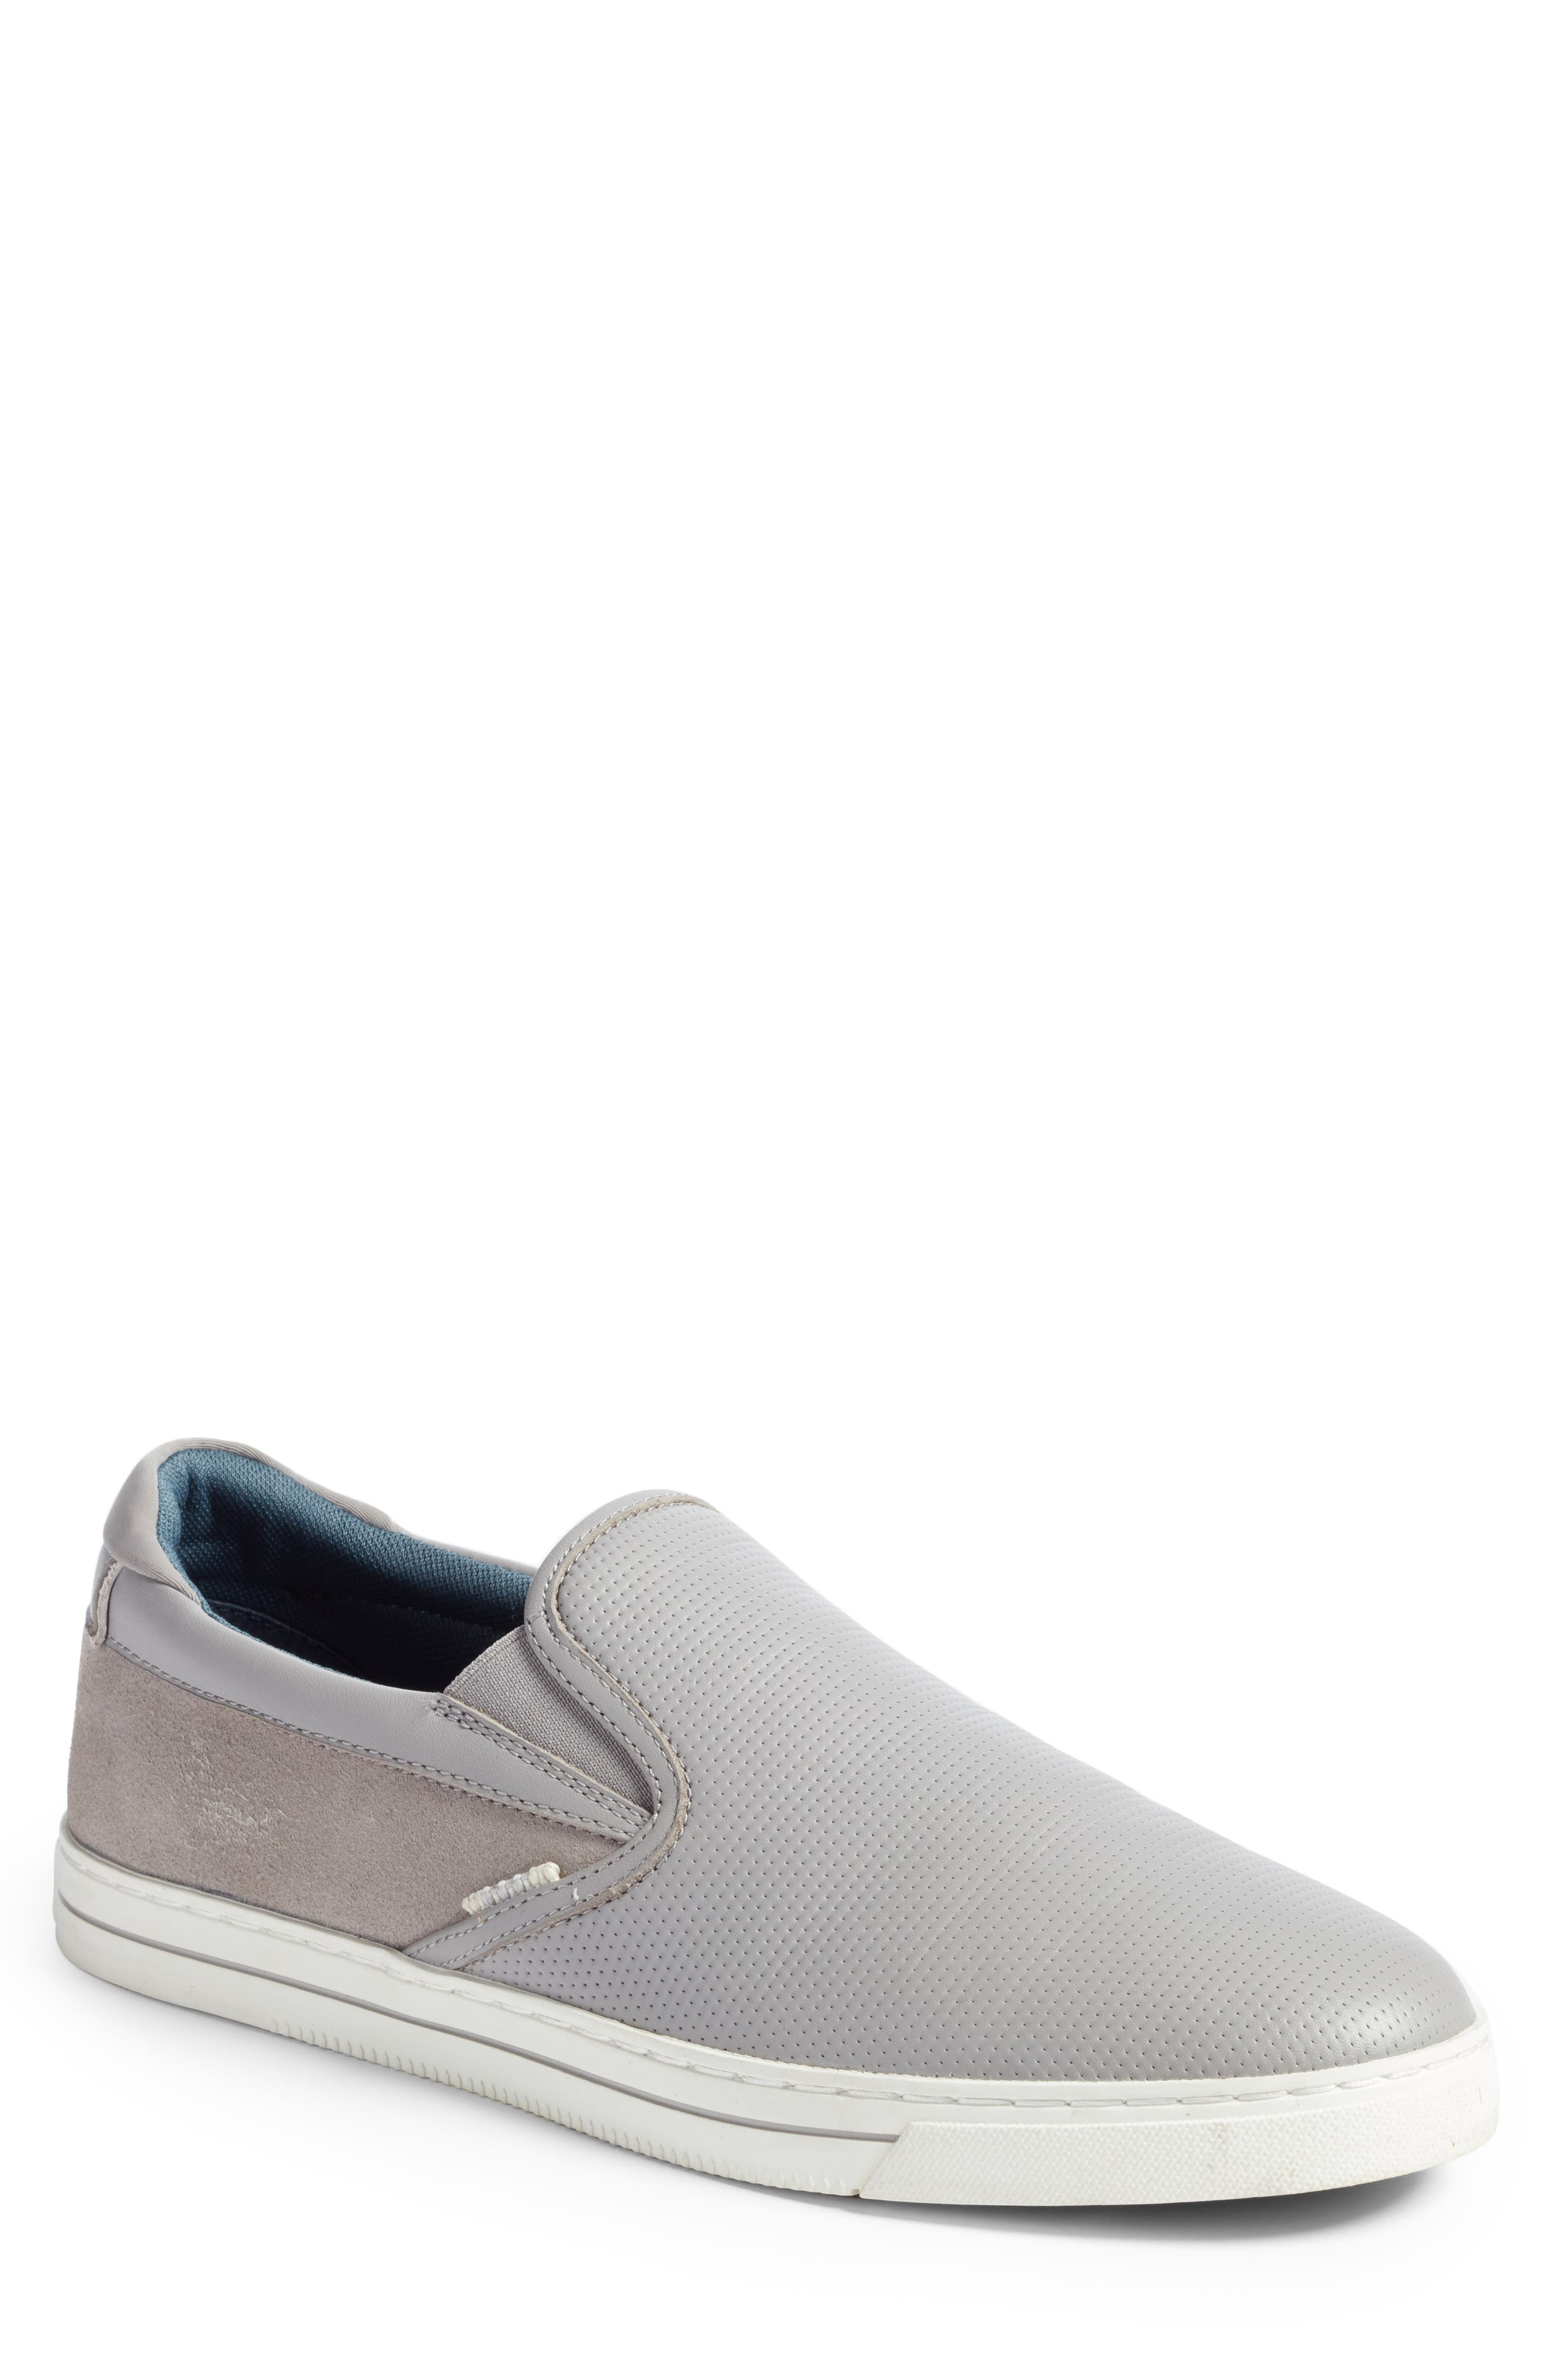 Patroy Perforated Slip-On Sneaker,                         Main,                         color, LIGHT GREY LEATHER